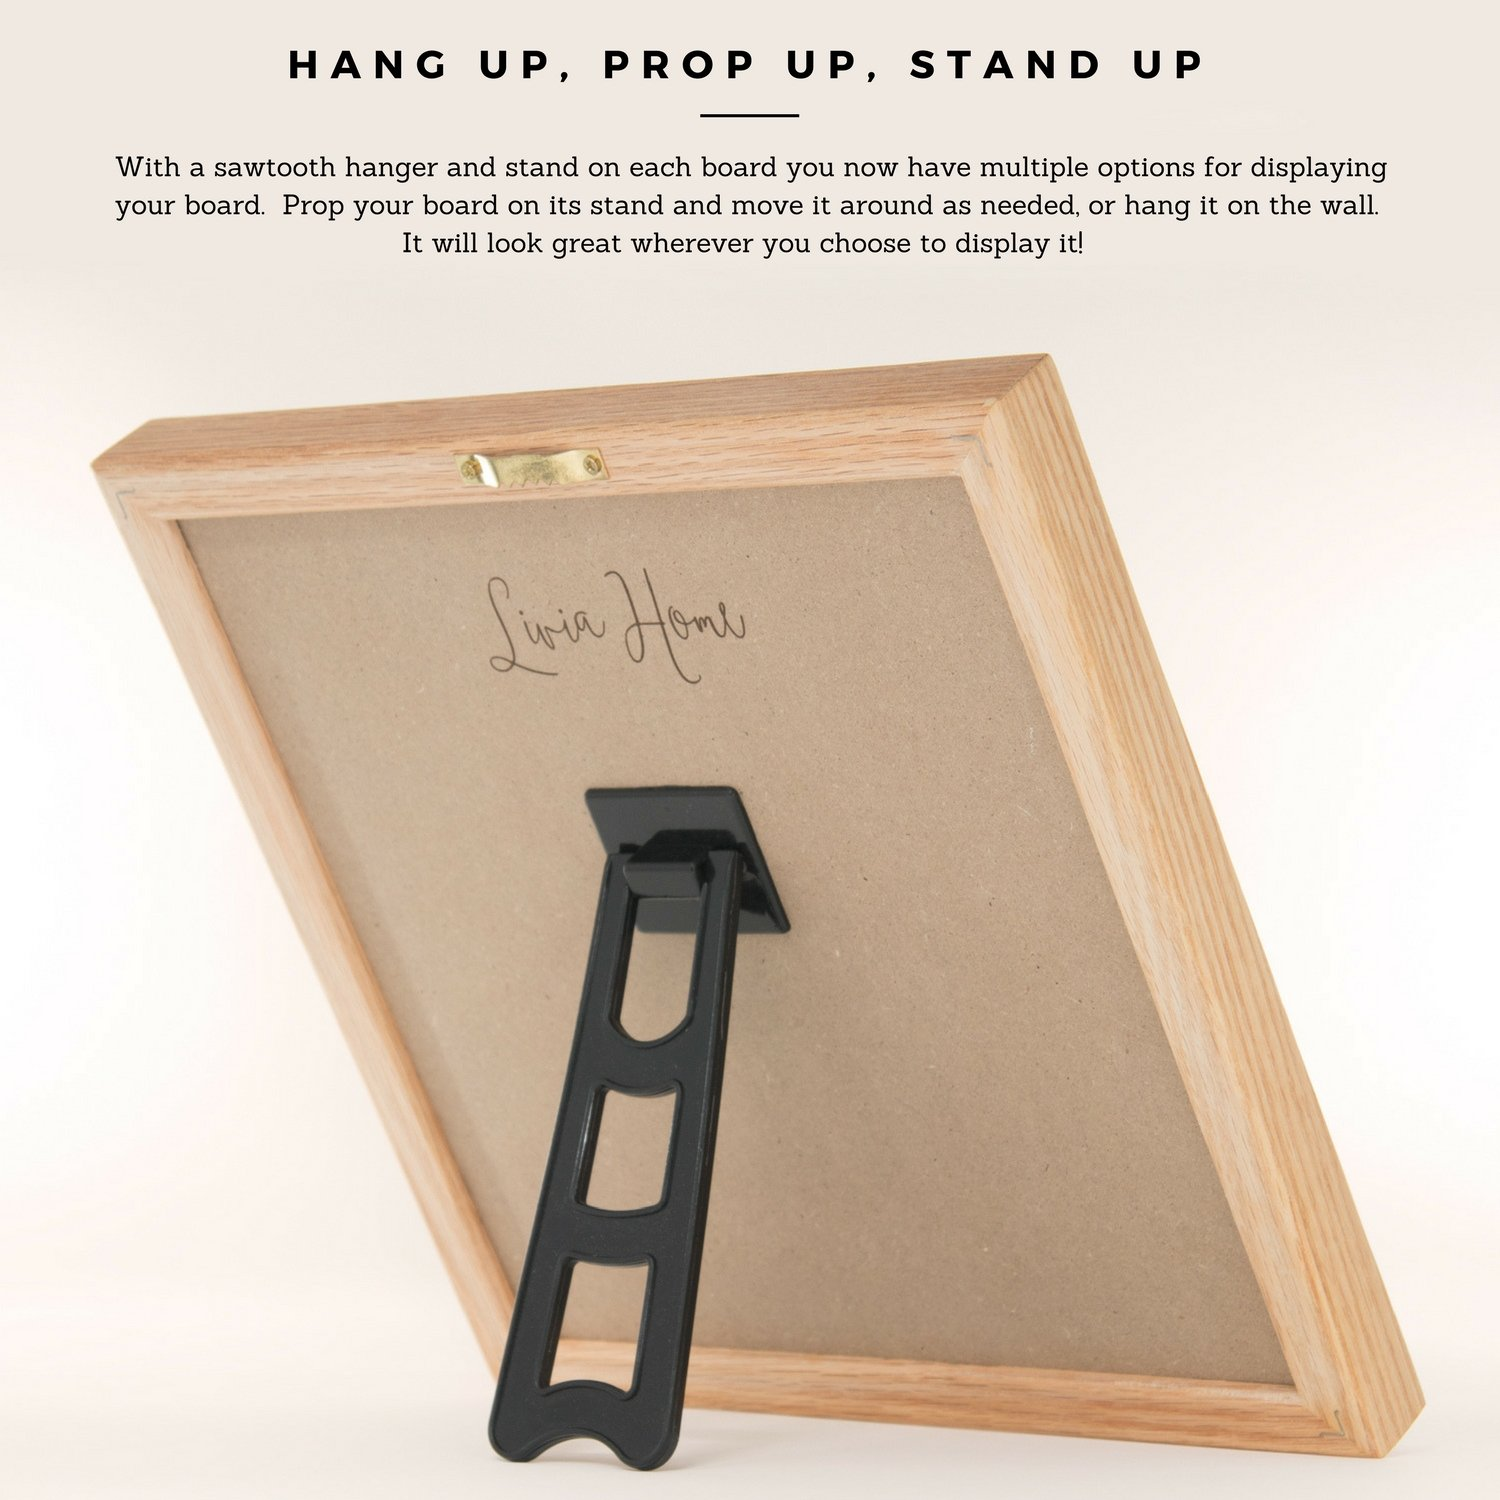 Amazon.com : Letter Board with Stand - Black Felt Sign with 326 ...